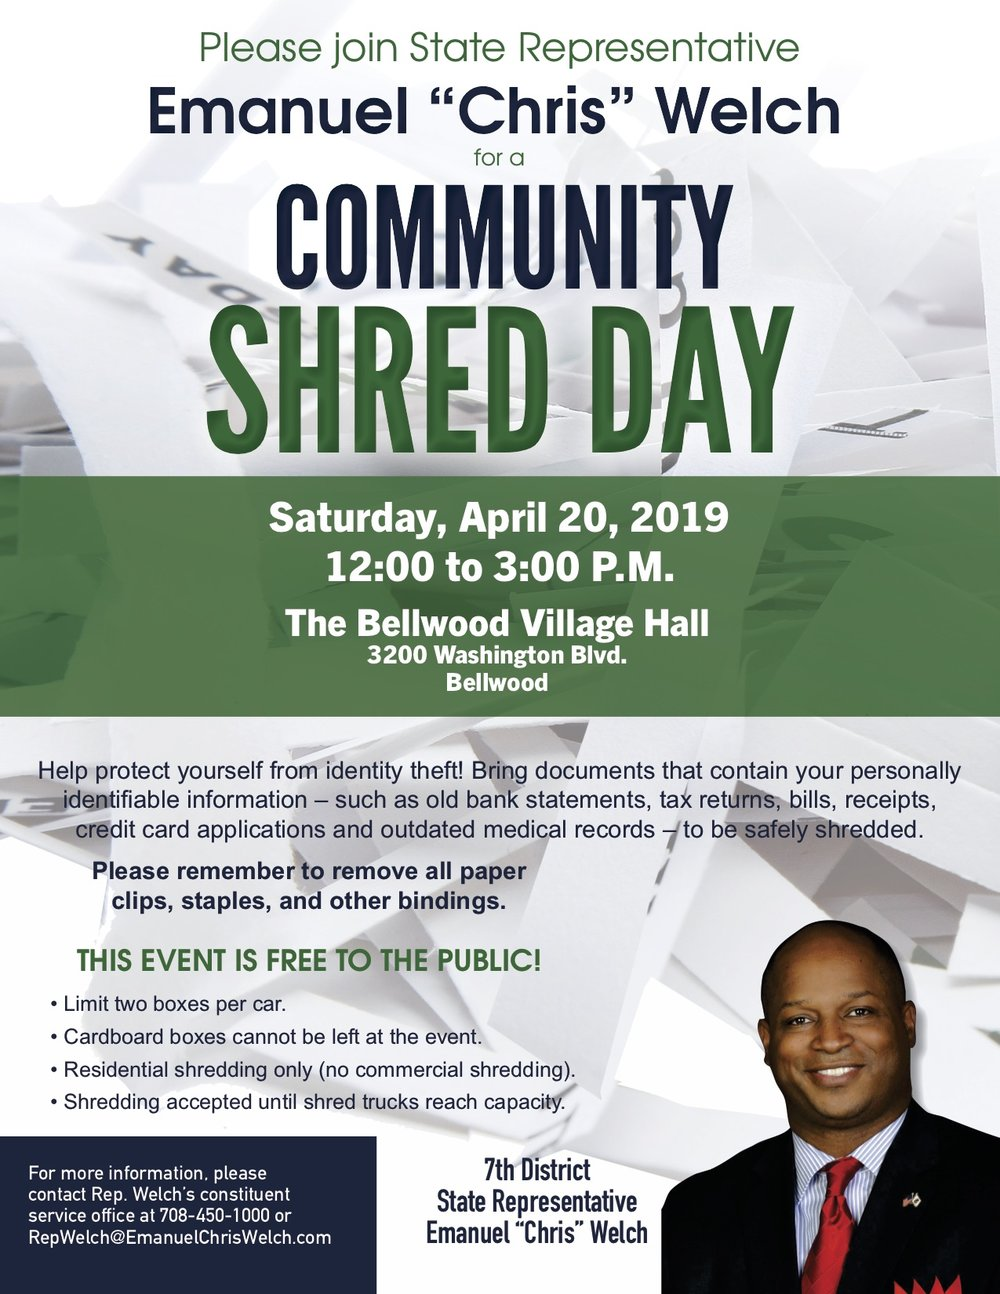 WELCH SHRED DAY FLYER 2019.jpg